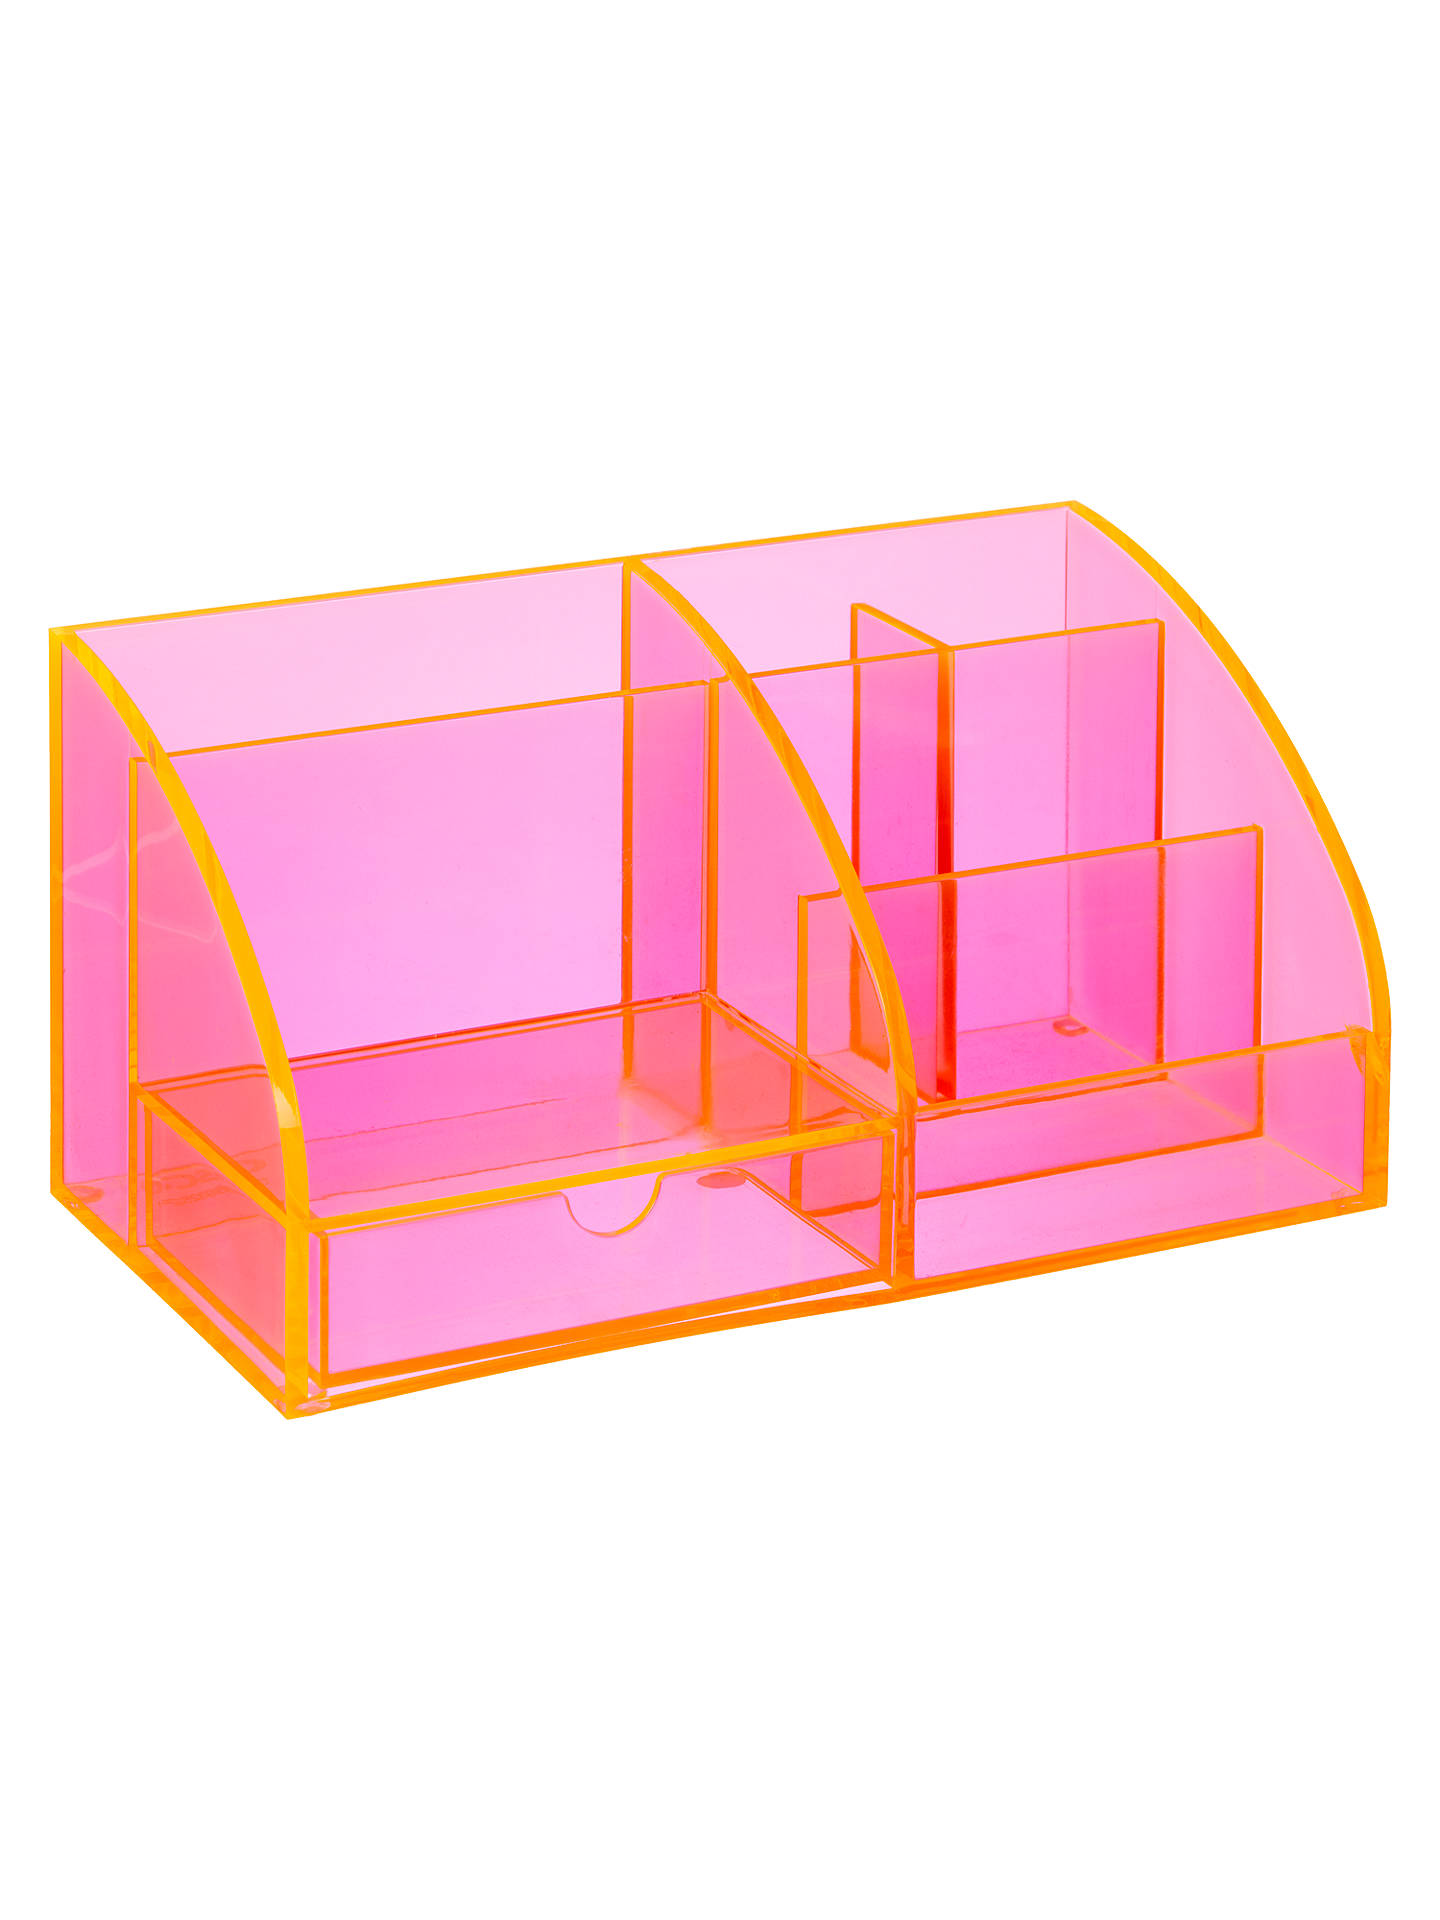 BuyOsco Desk Organiser, Pink Online at johnlewis.com